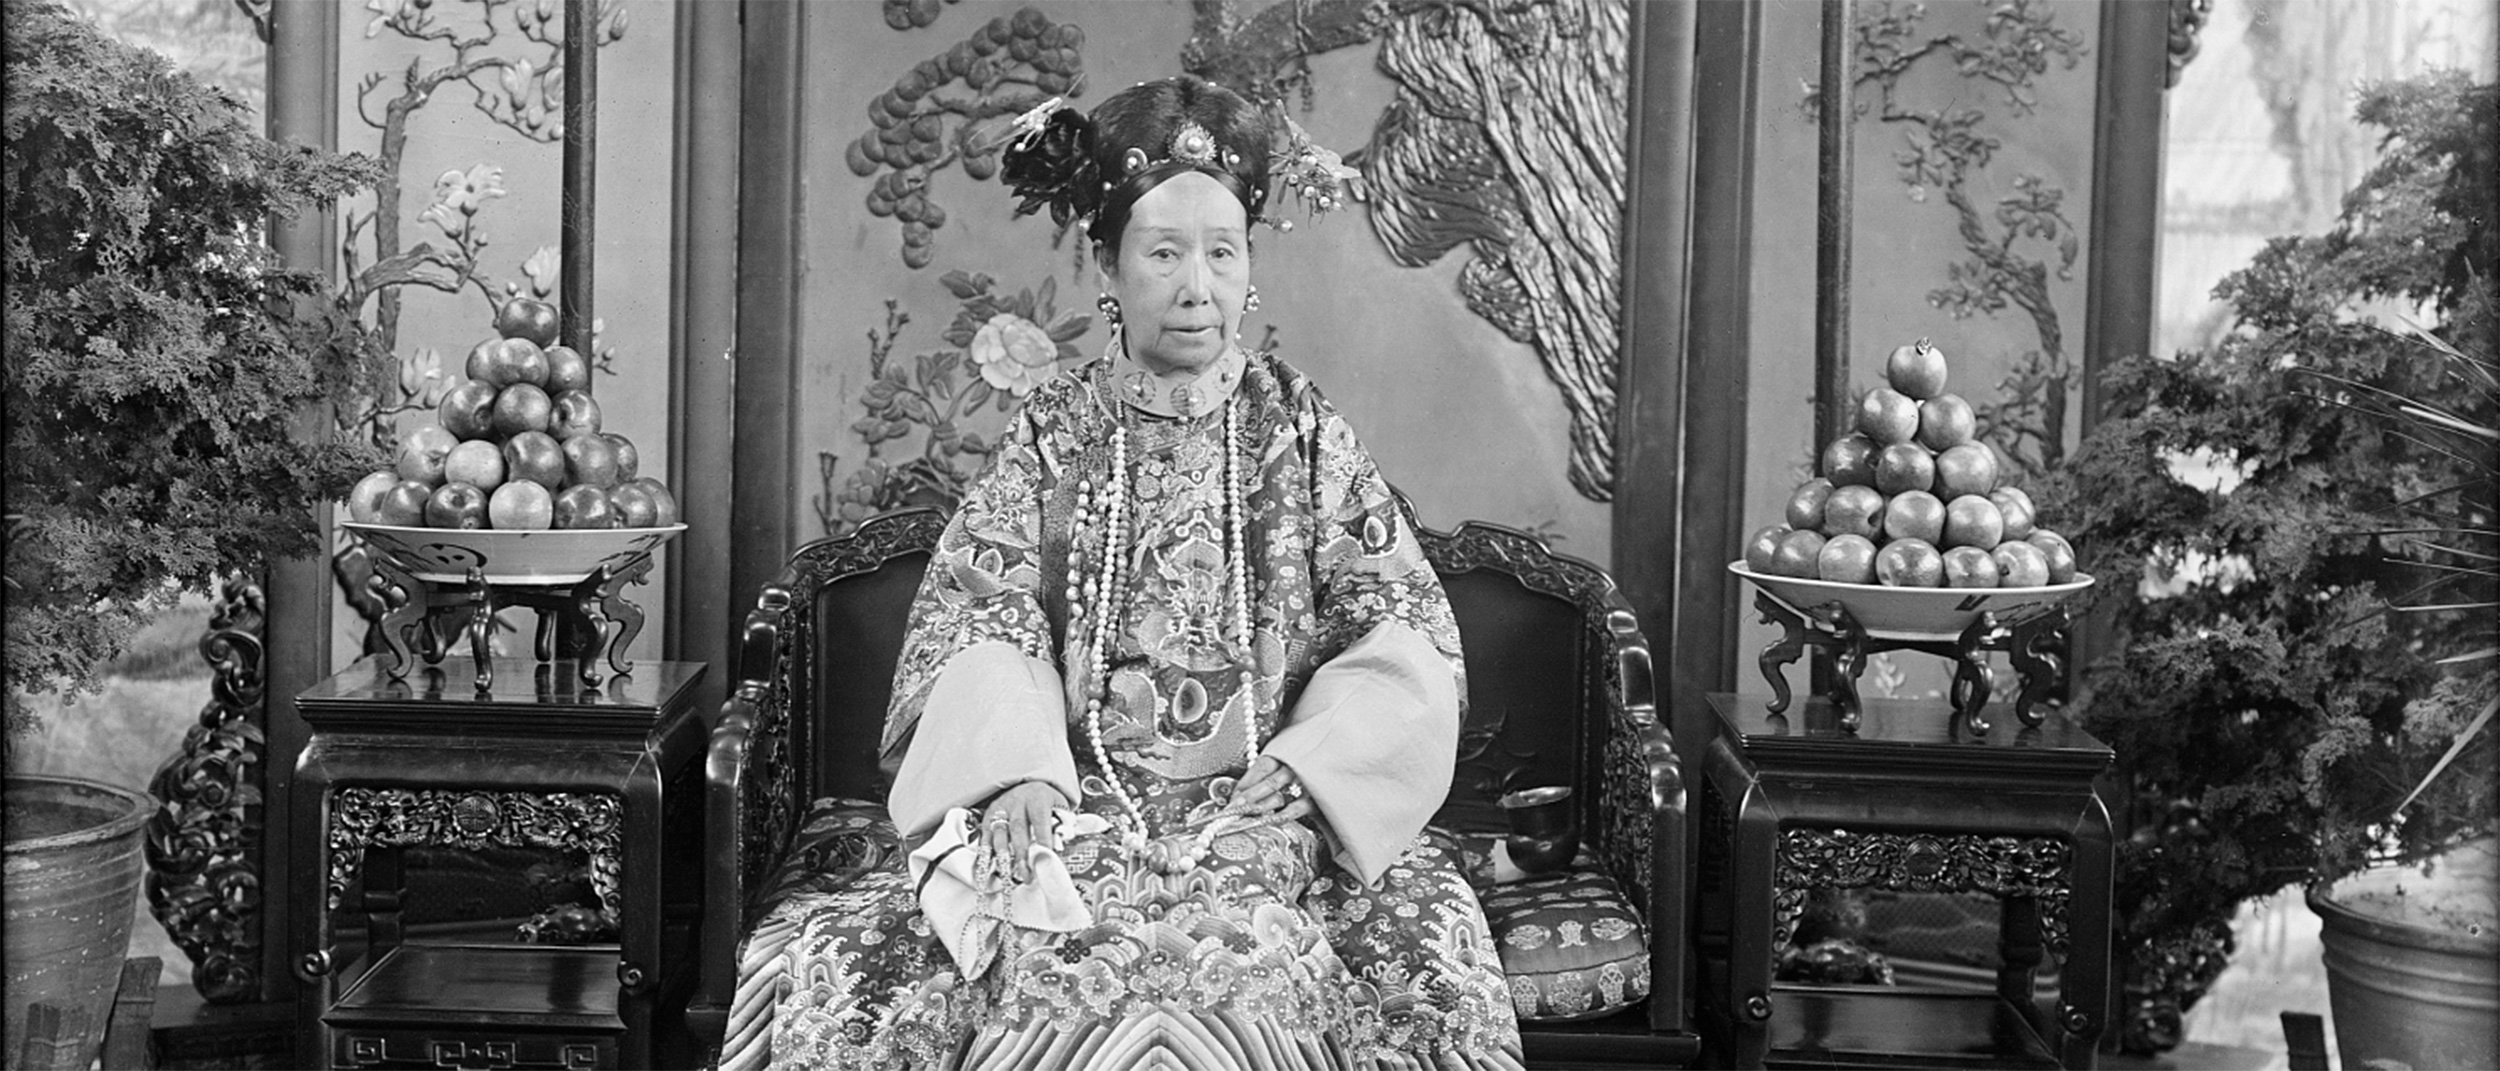 Detail from a photograph of Empress Dowager Cixi, from the archives, FS-FSA_A.13_SC-GR-262